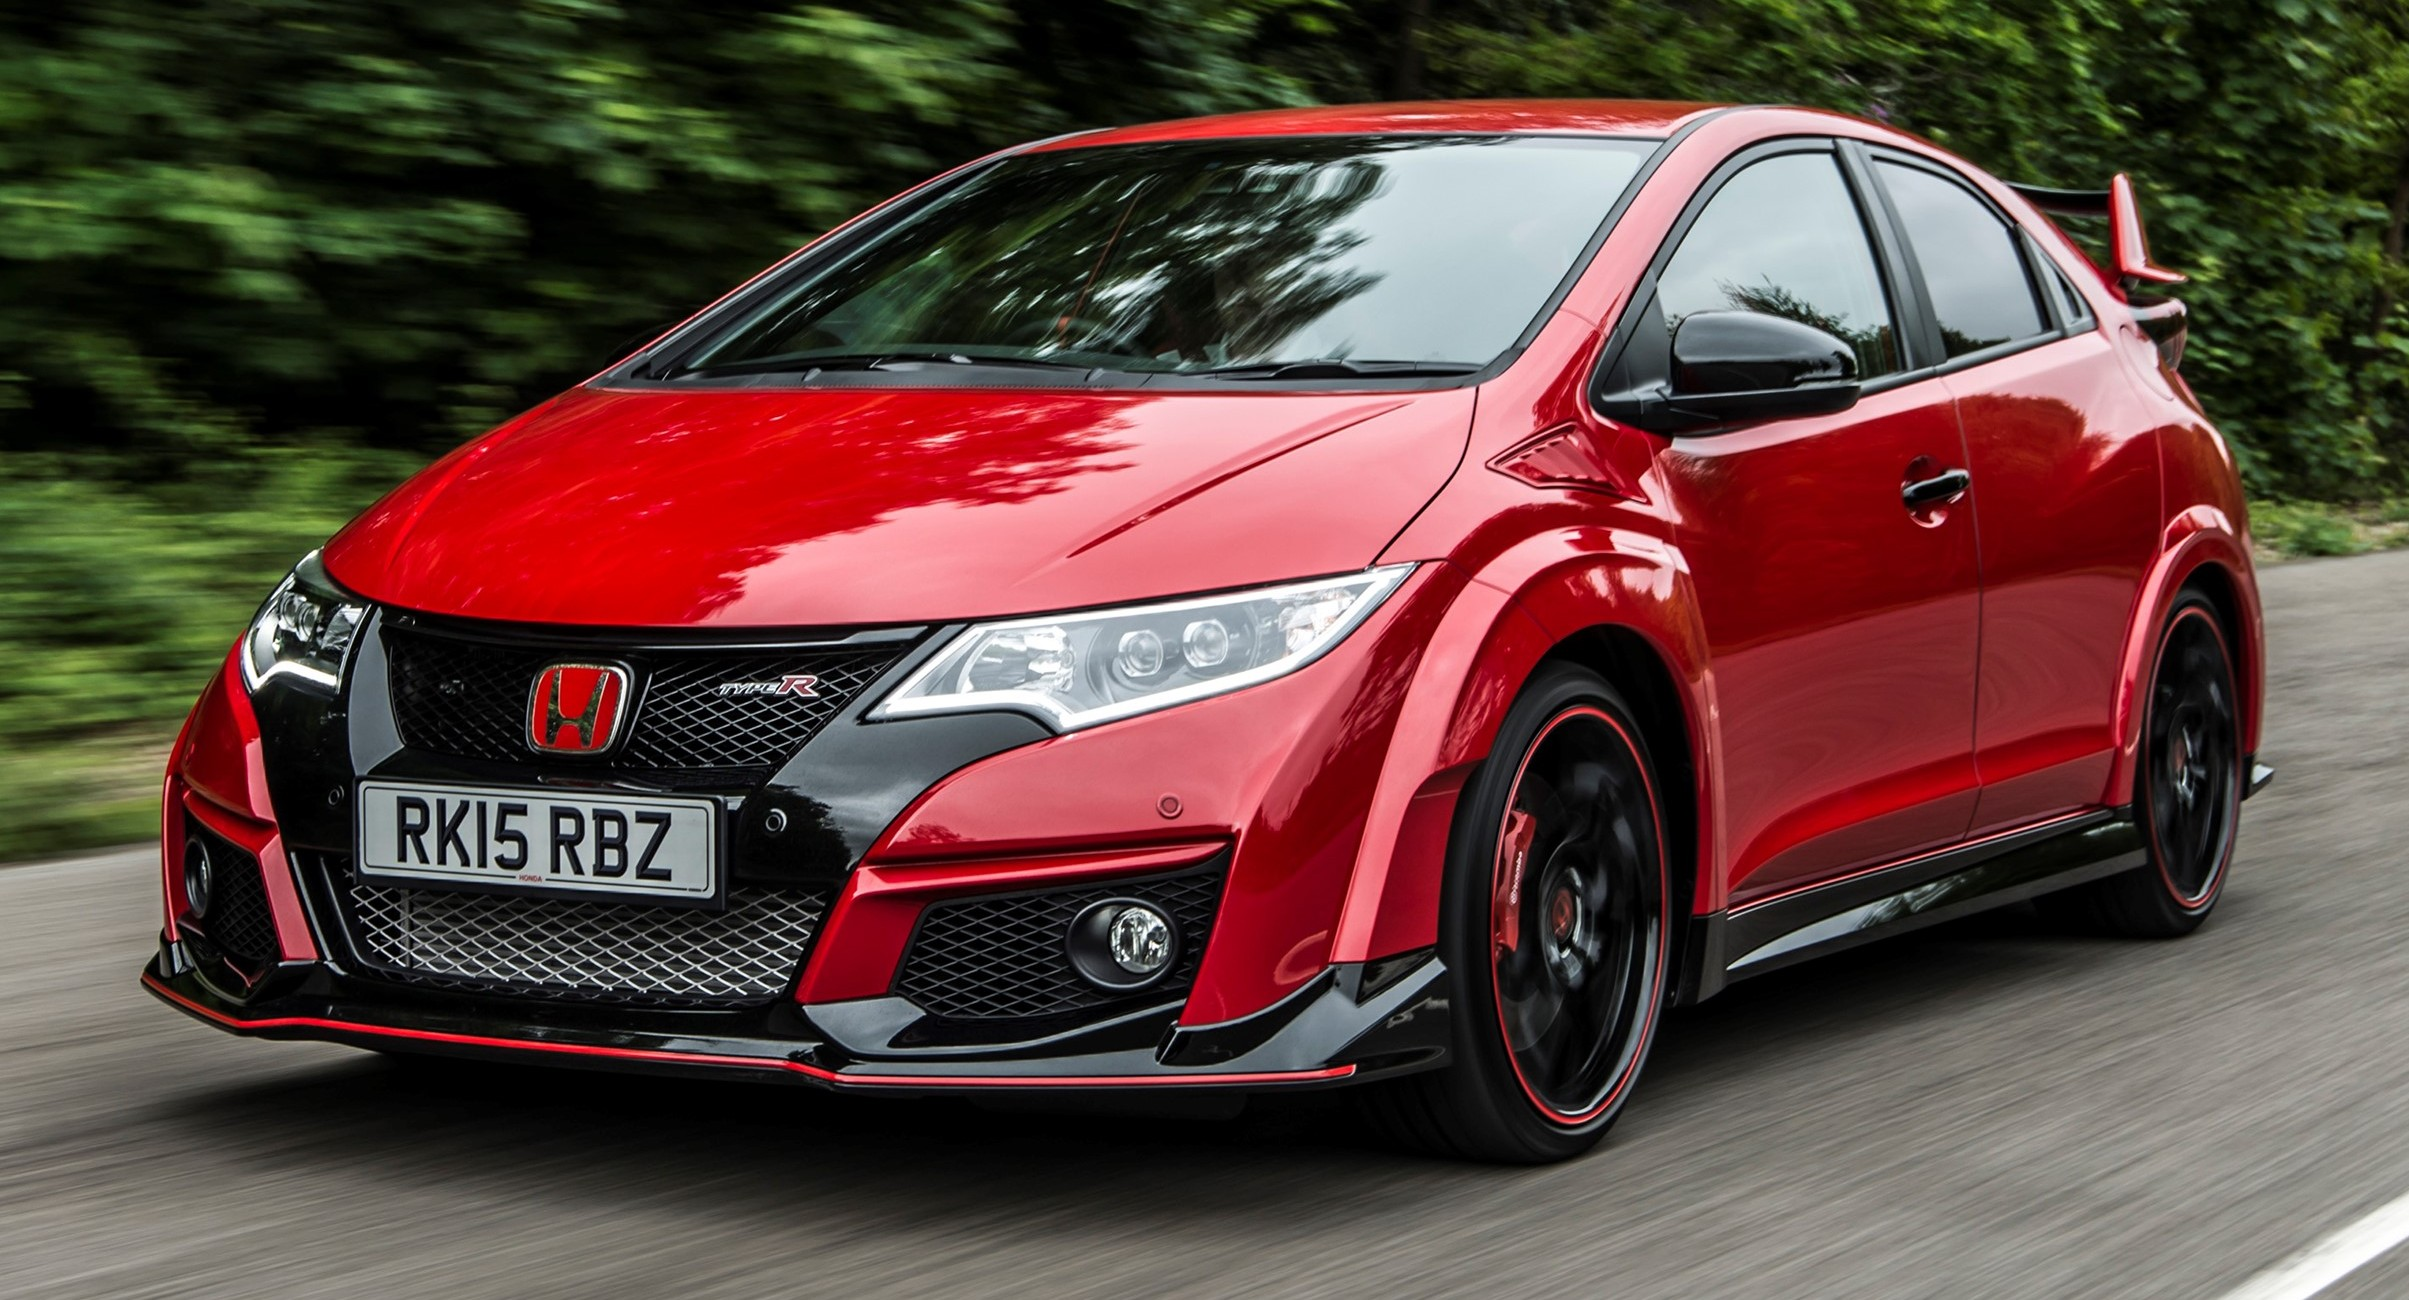 2015 honda civic type r finally lands in malaysia